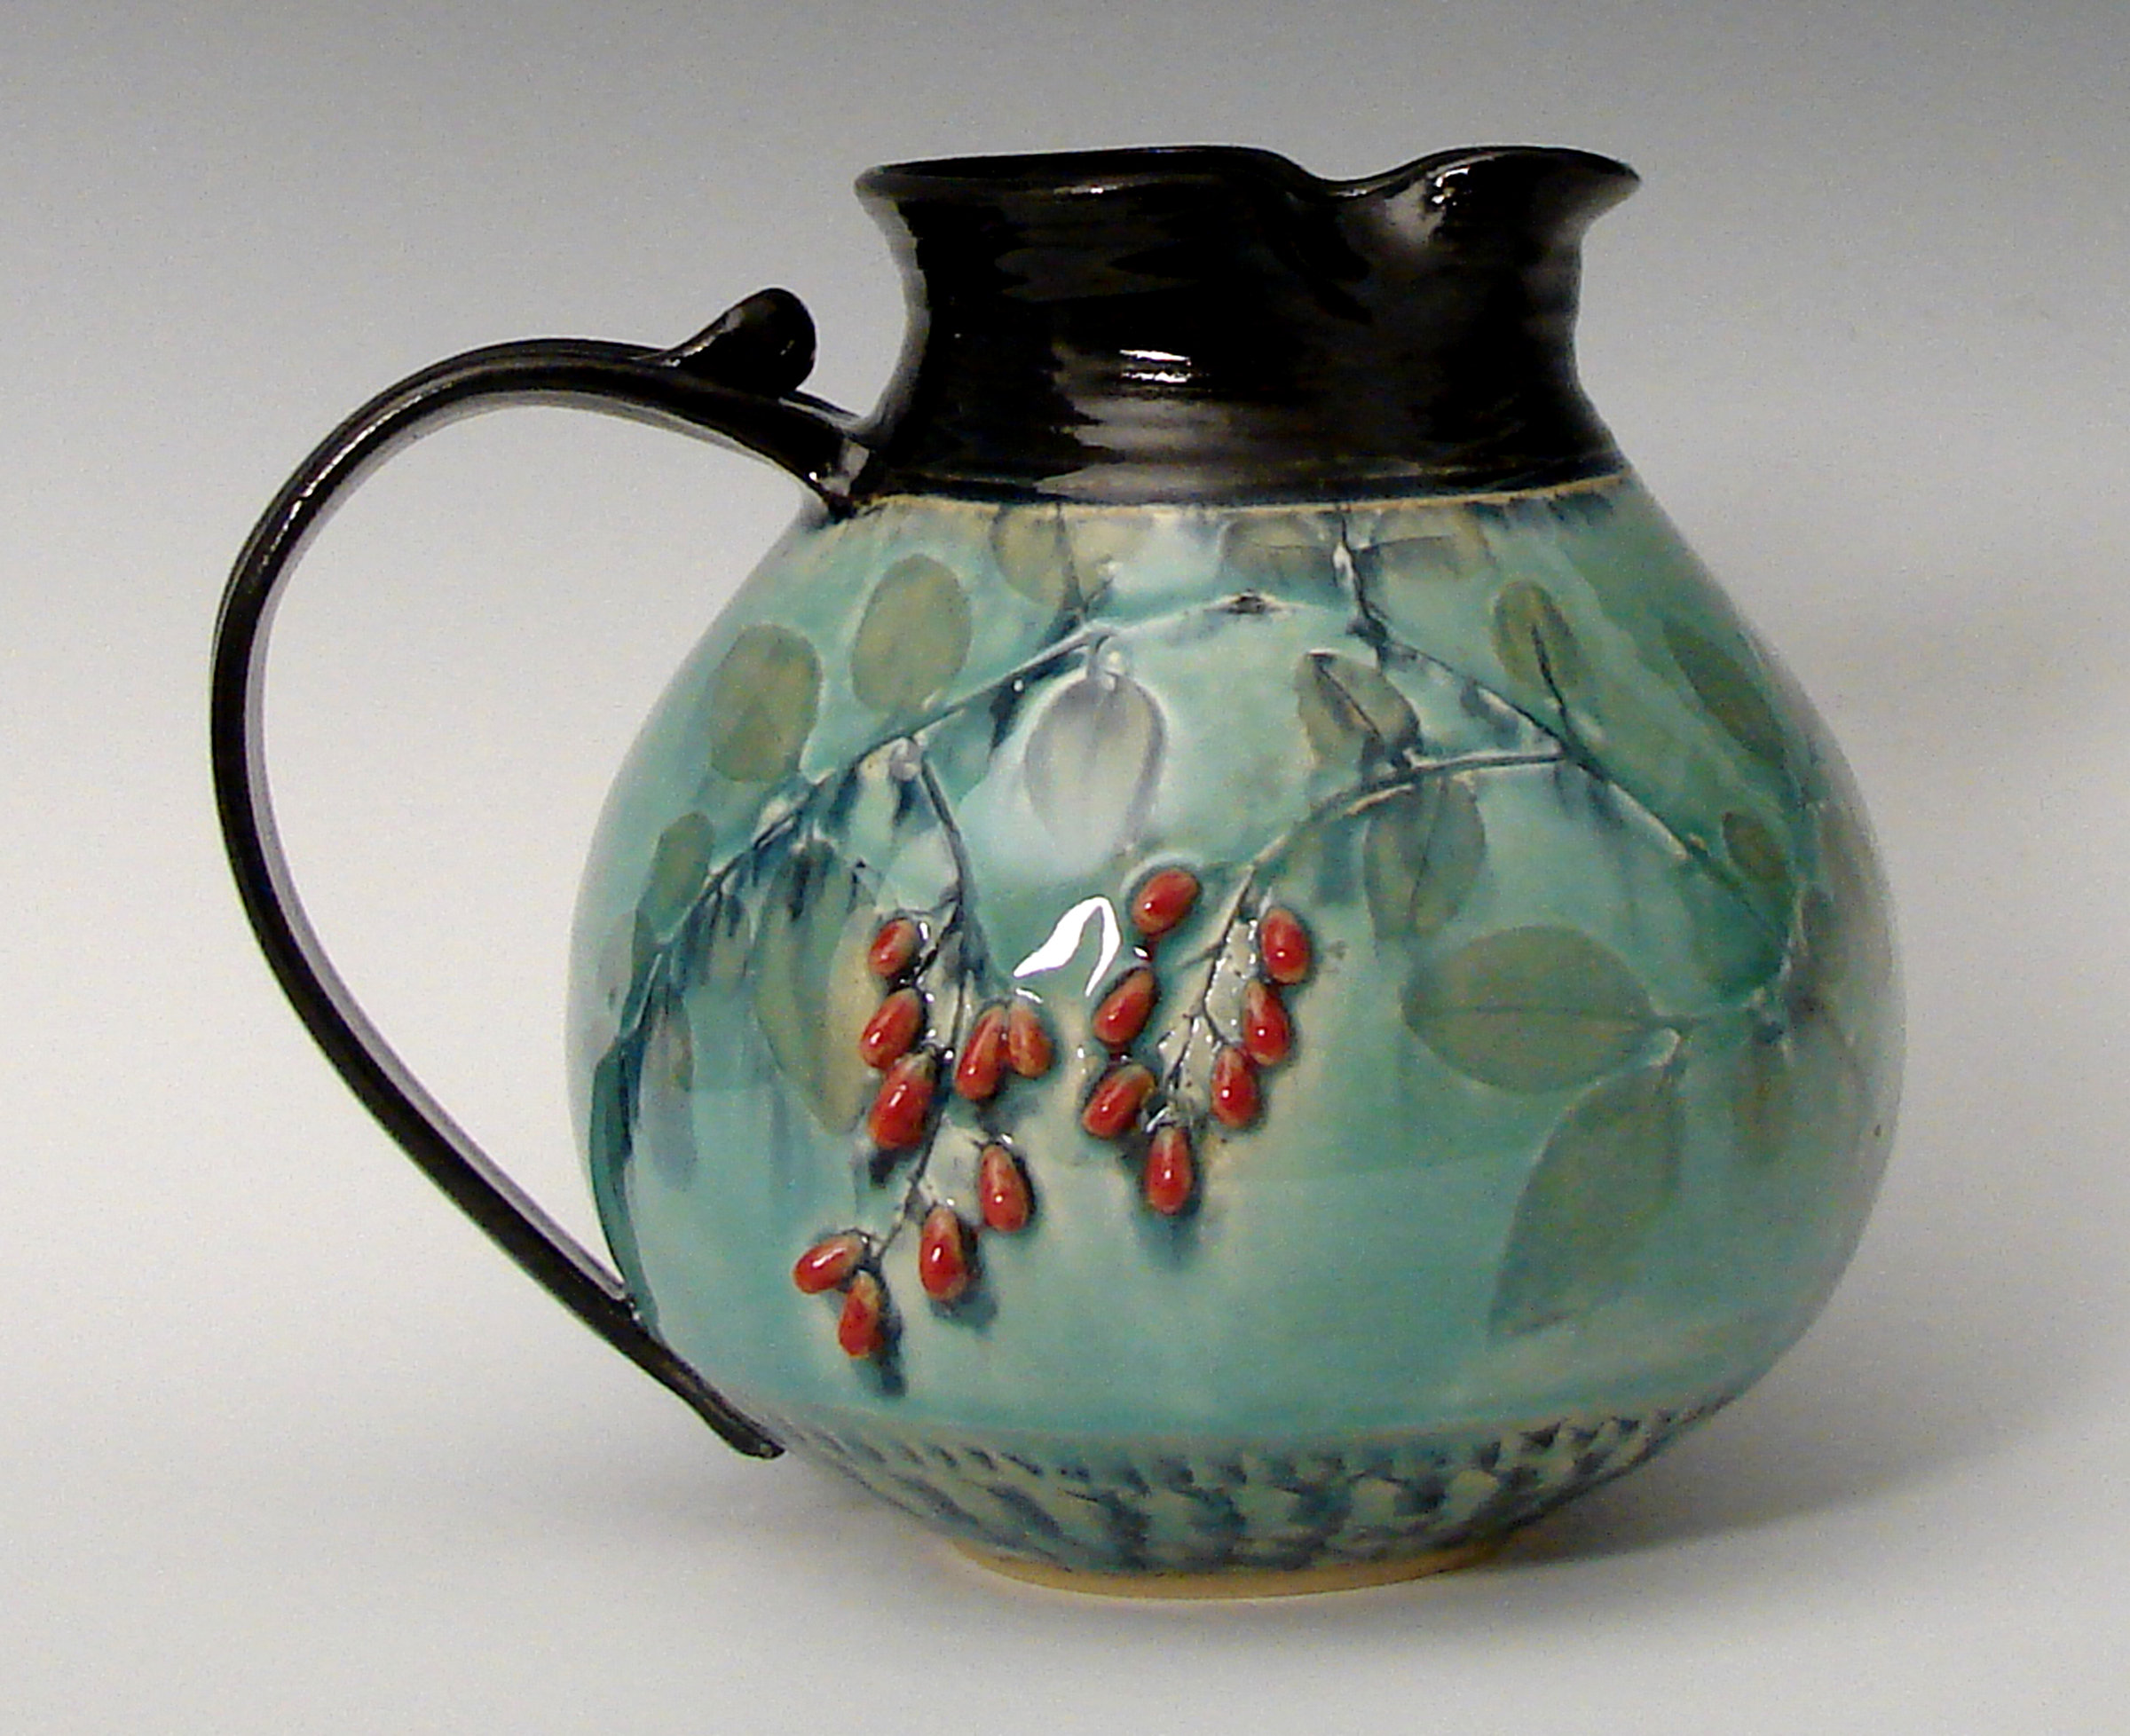 pitcher ceramic pottery crane berries chubby pitchers clay suzanne ceramics stoneware artfulhome artful unique because thrown vases created wheel pulled